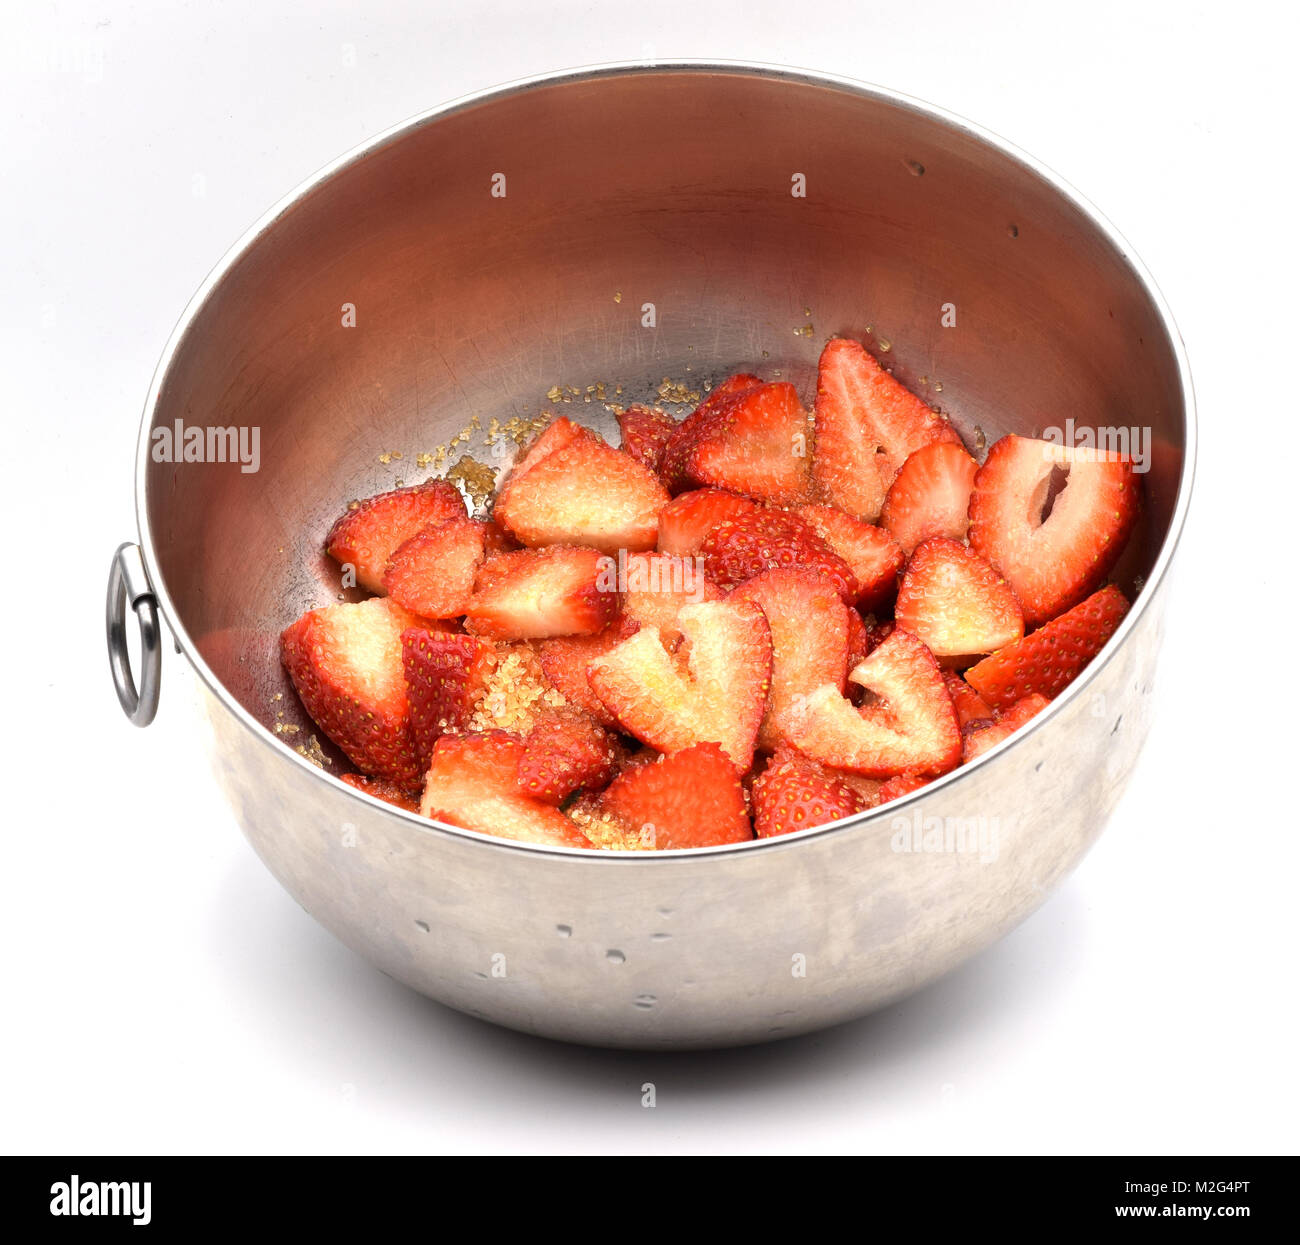 Cut strawberries covered with sugar in a metal bowl on a seamless white background. - Stock Image